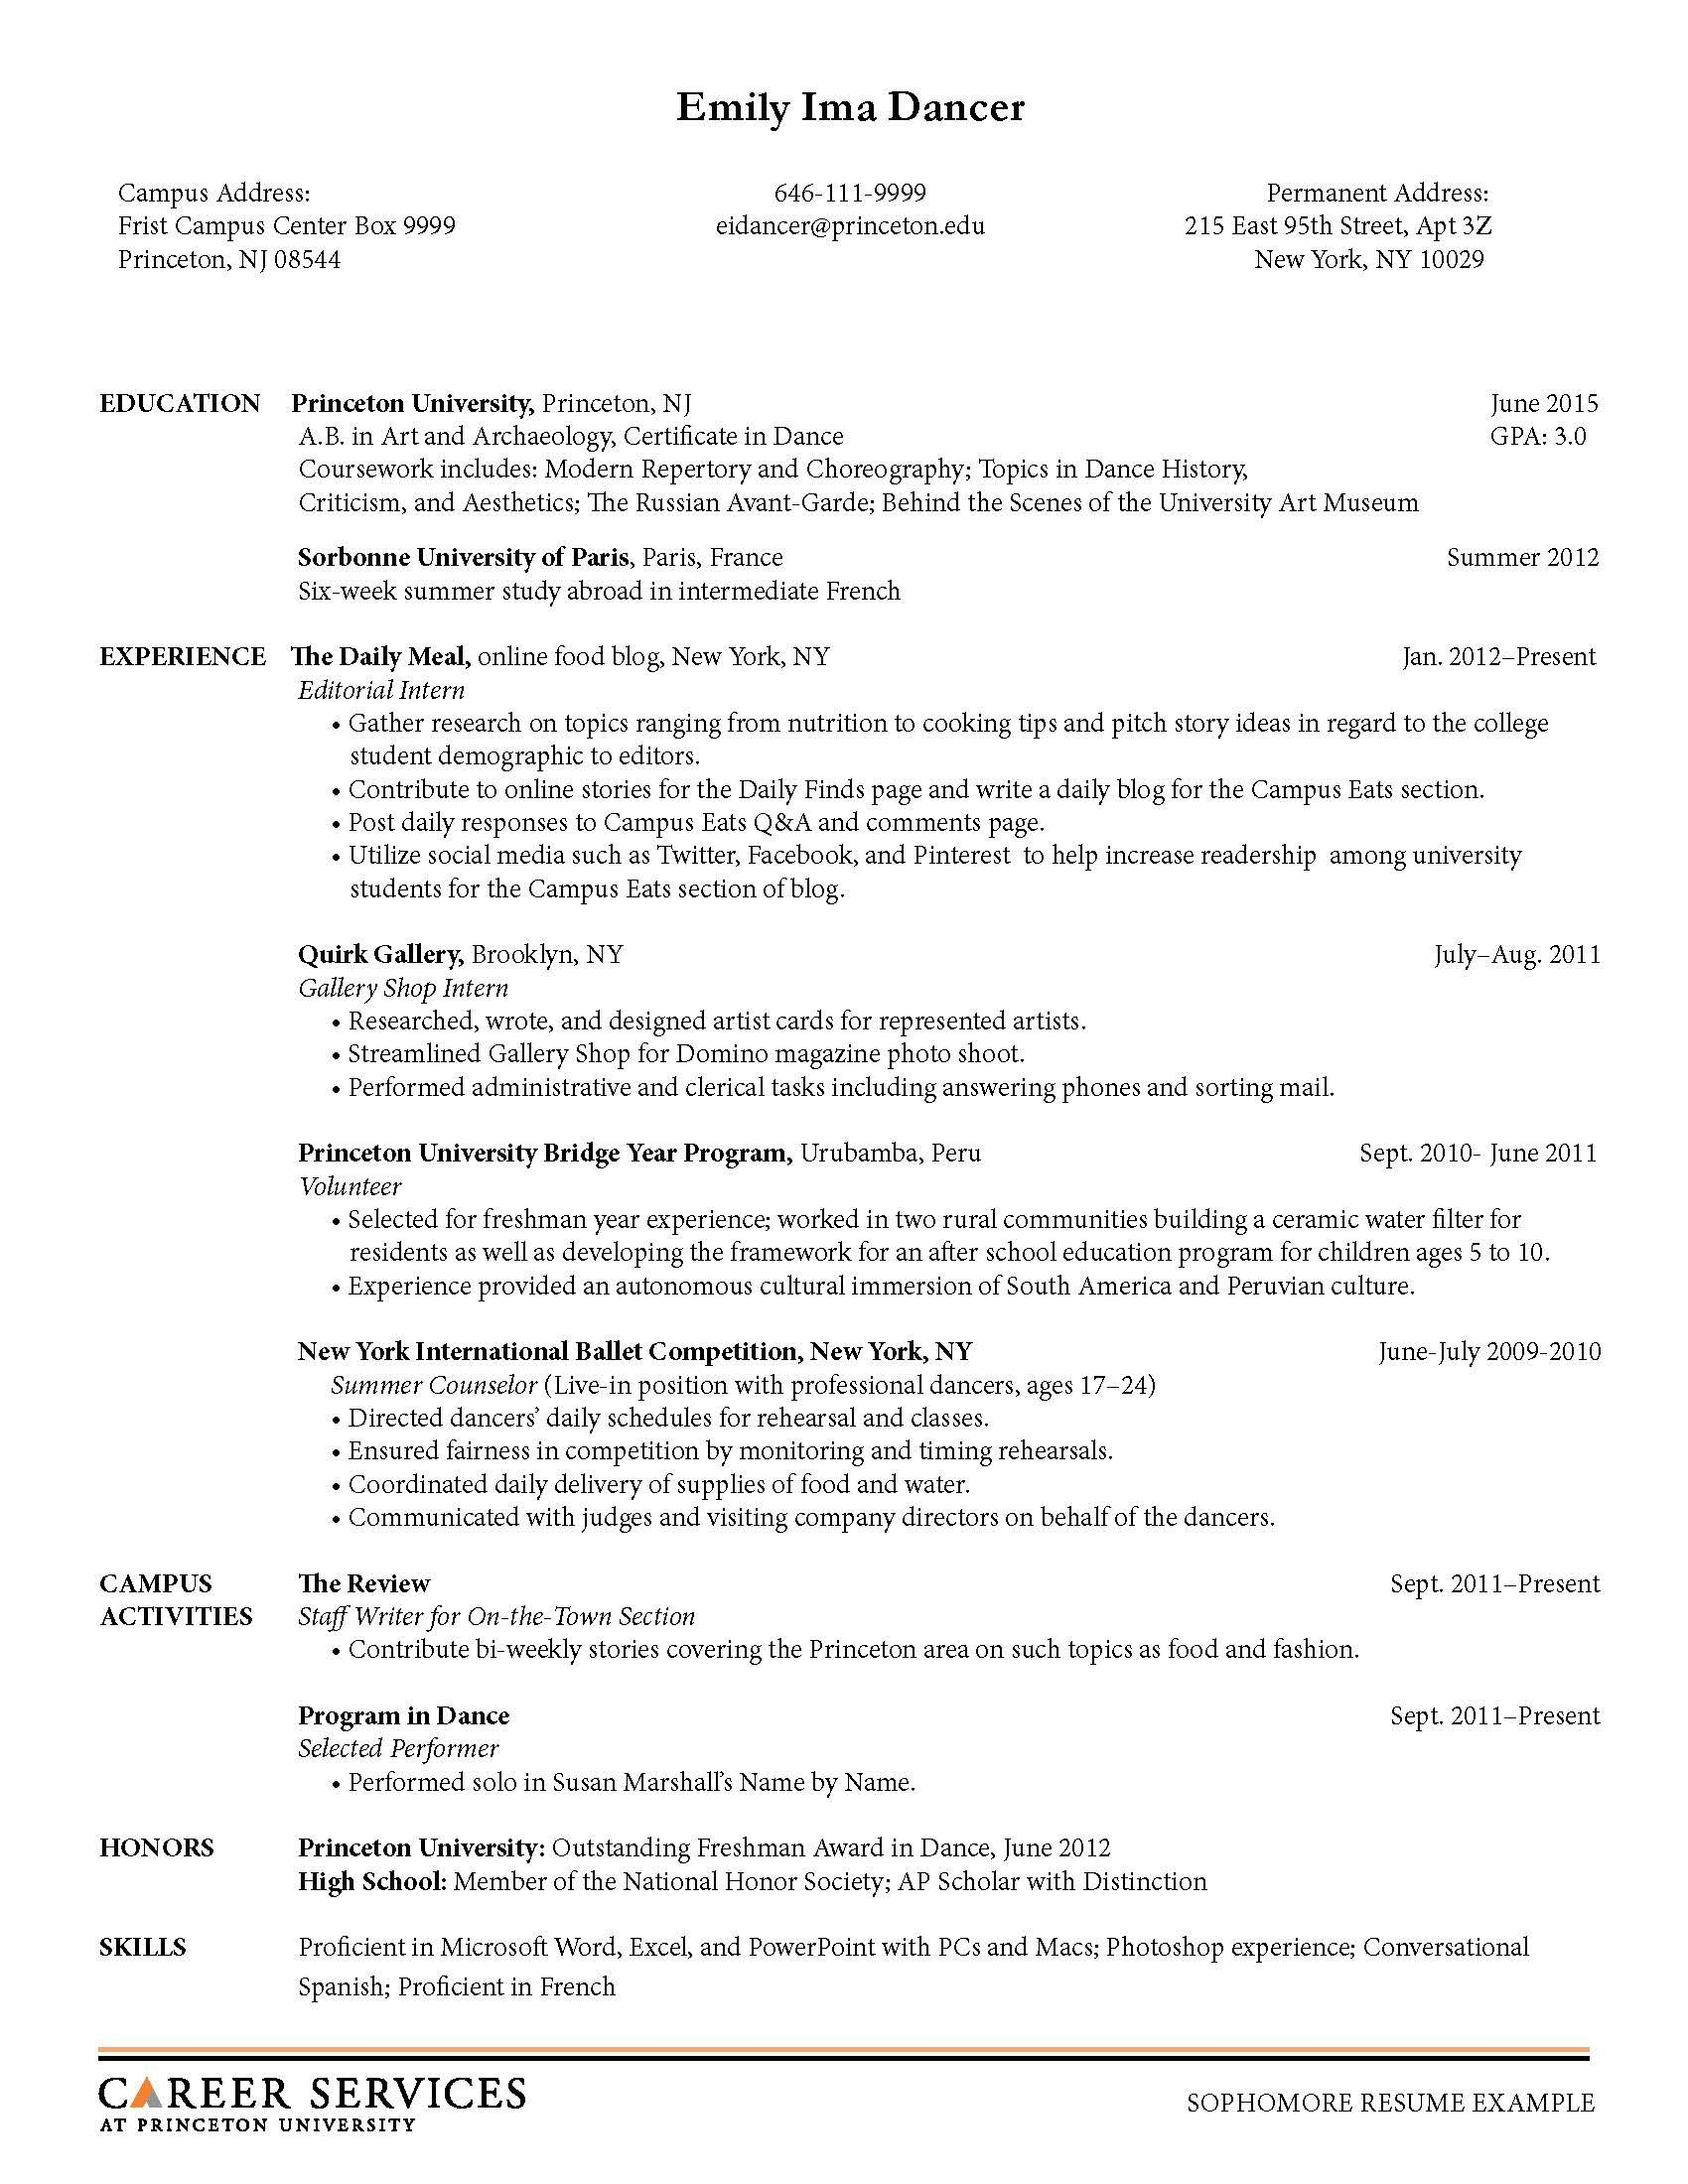 Opposenewapstandardsus  Surprising Sample Resume Resume And Career On Pinterest With Lovable Emt Resume Template Besides Resume Phrases To Use Furthermore Sites To Post Resume With Lovely Banking Resume Template Also Resume Keywords List By Industry In Addition Head Cashier Resume And Aerospace Engineering Resume As Well As How Do You Make A Resume On Word Additionally Accounts Receivable Specialist Resume From Pinterestcom With Opposenewapstandardsus  Lovable Sample Resume Resume And Career On Pinterest With Lovely Emt Resume Template Besides Resume Phrases To Use Furthermore Sites To Post Resume And Surprising Banking Resume Template Also Resume Keywords List By Industry In Addition Head Cashier Resume From Pinterestcom